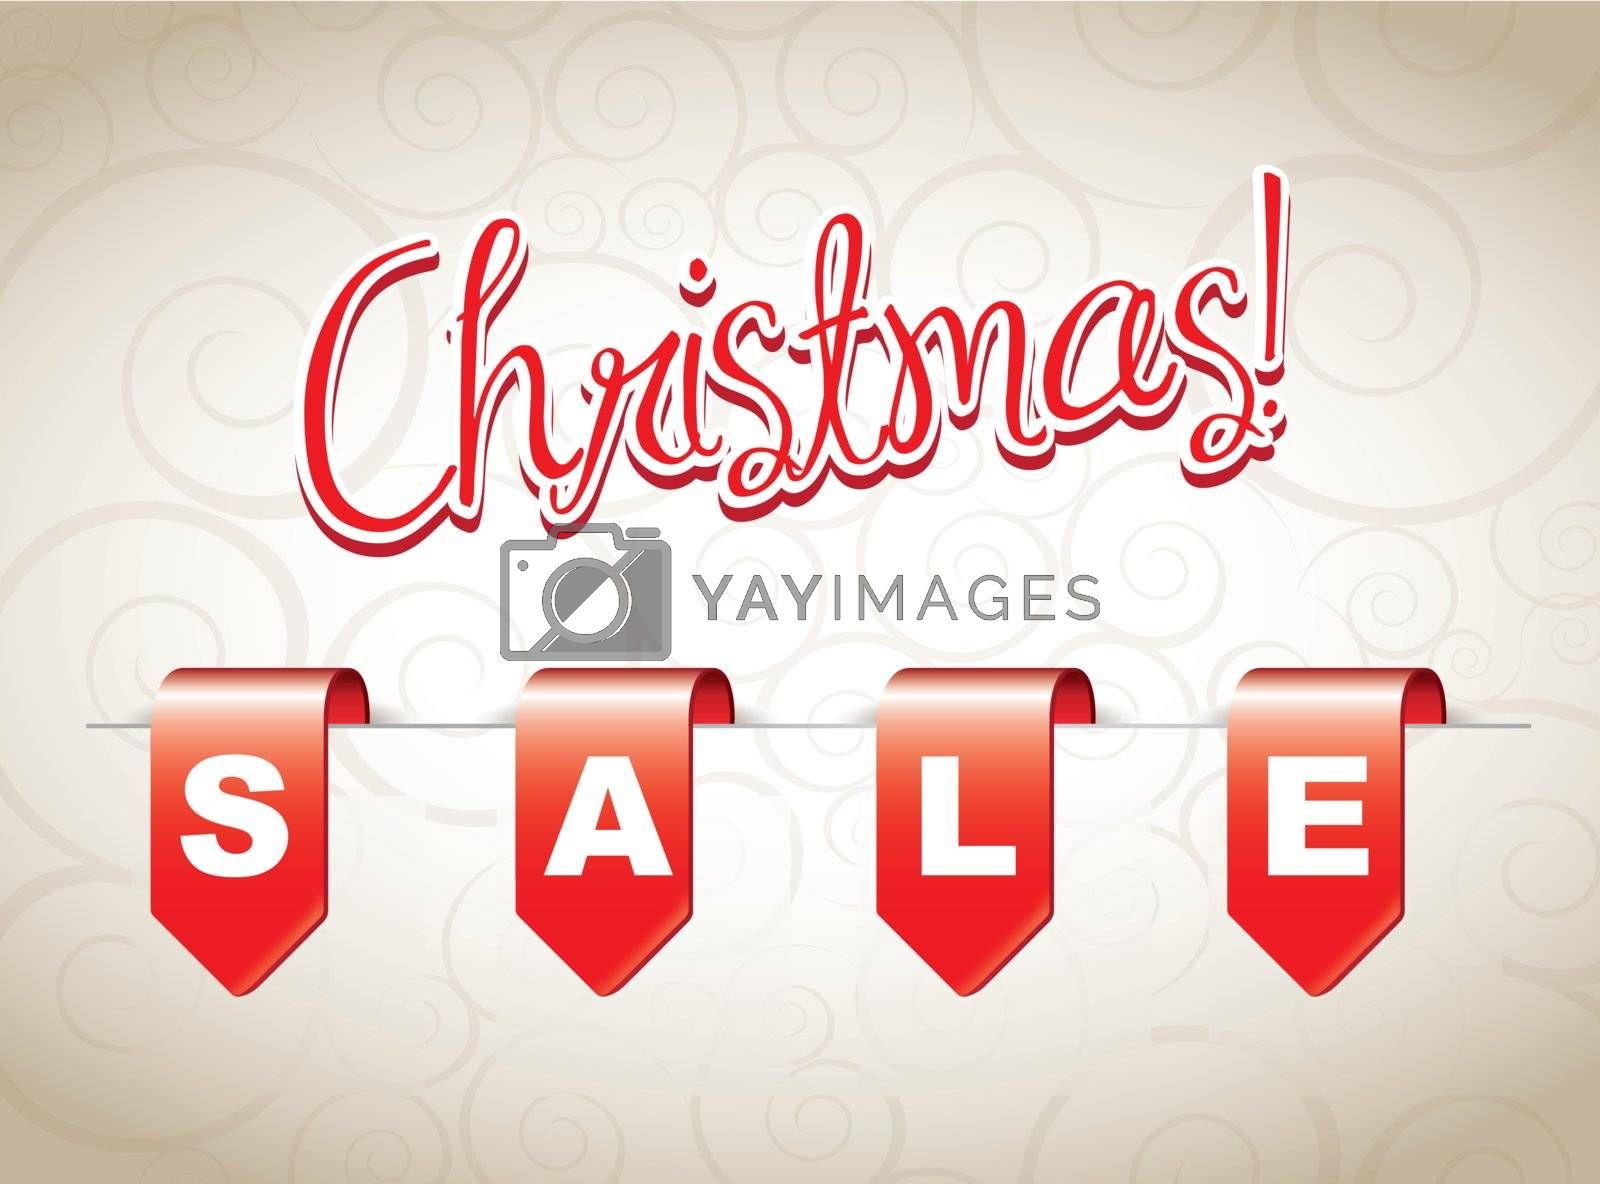 Christmas sale with offer tags over white background